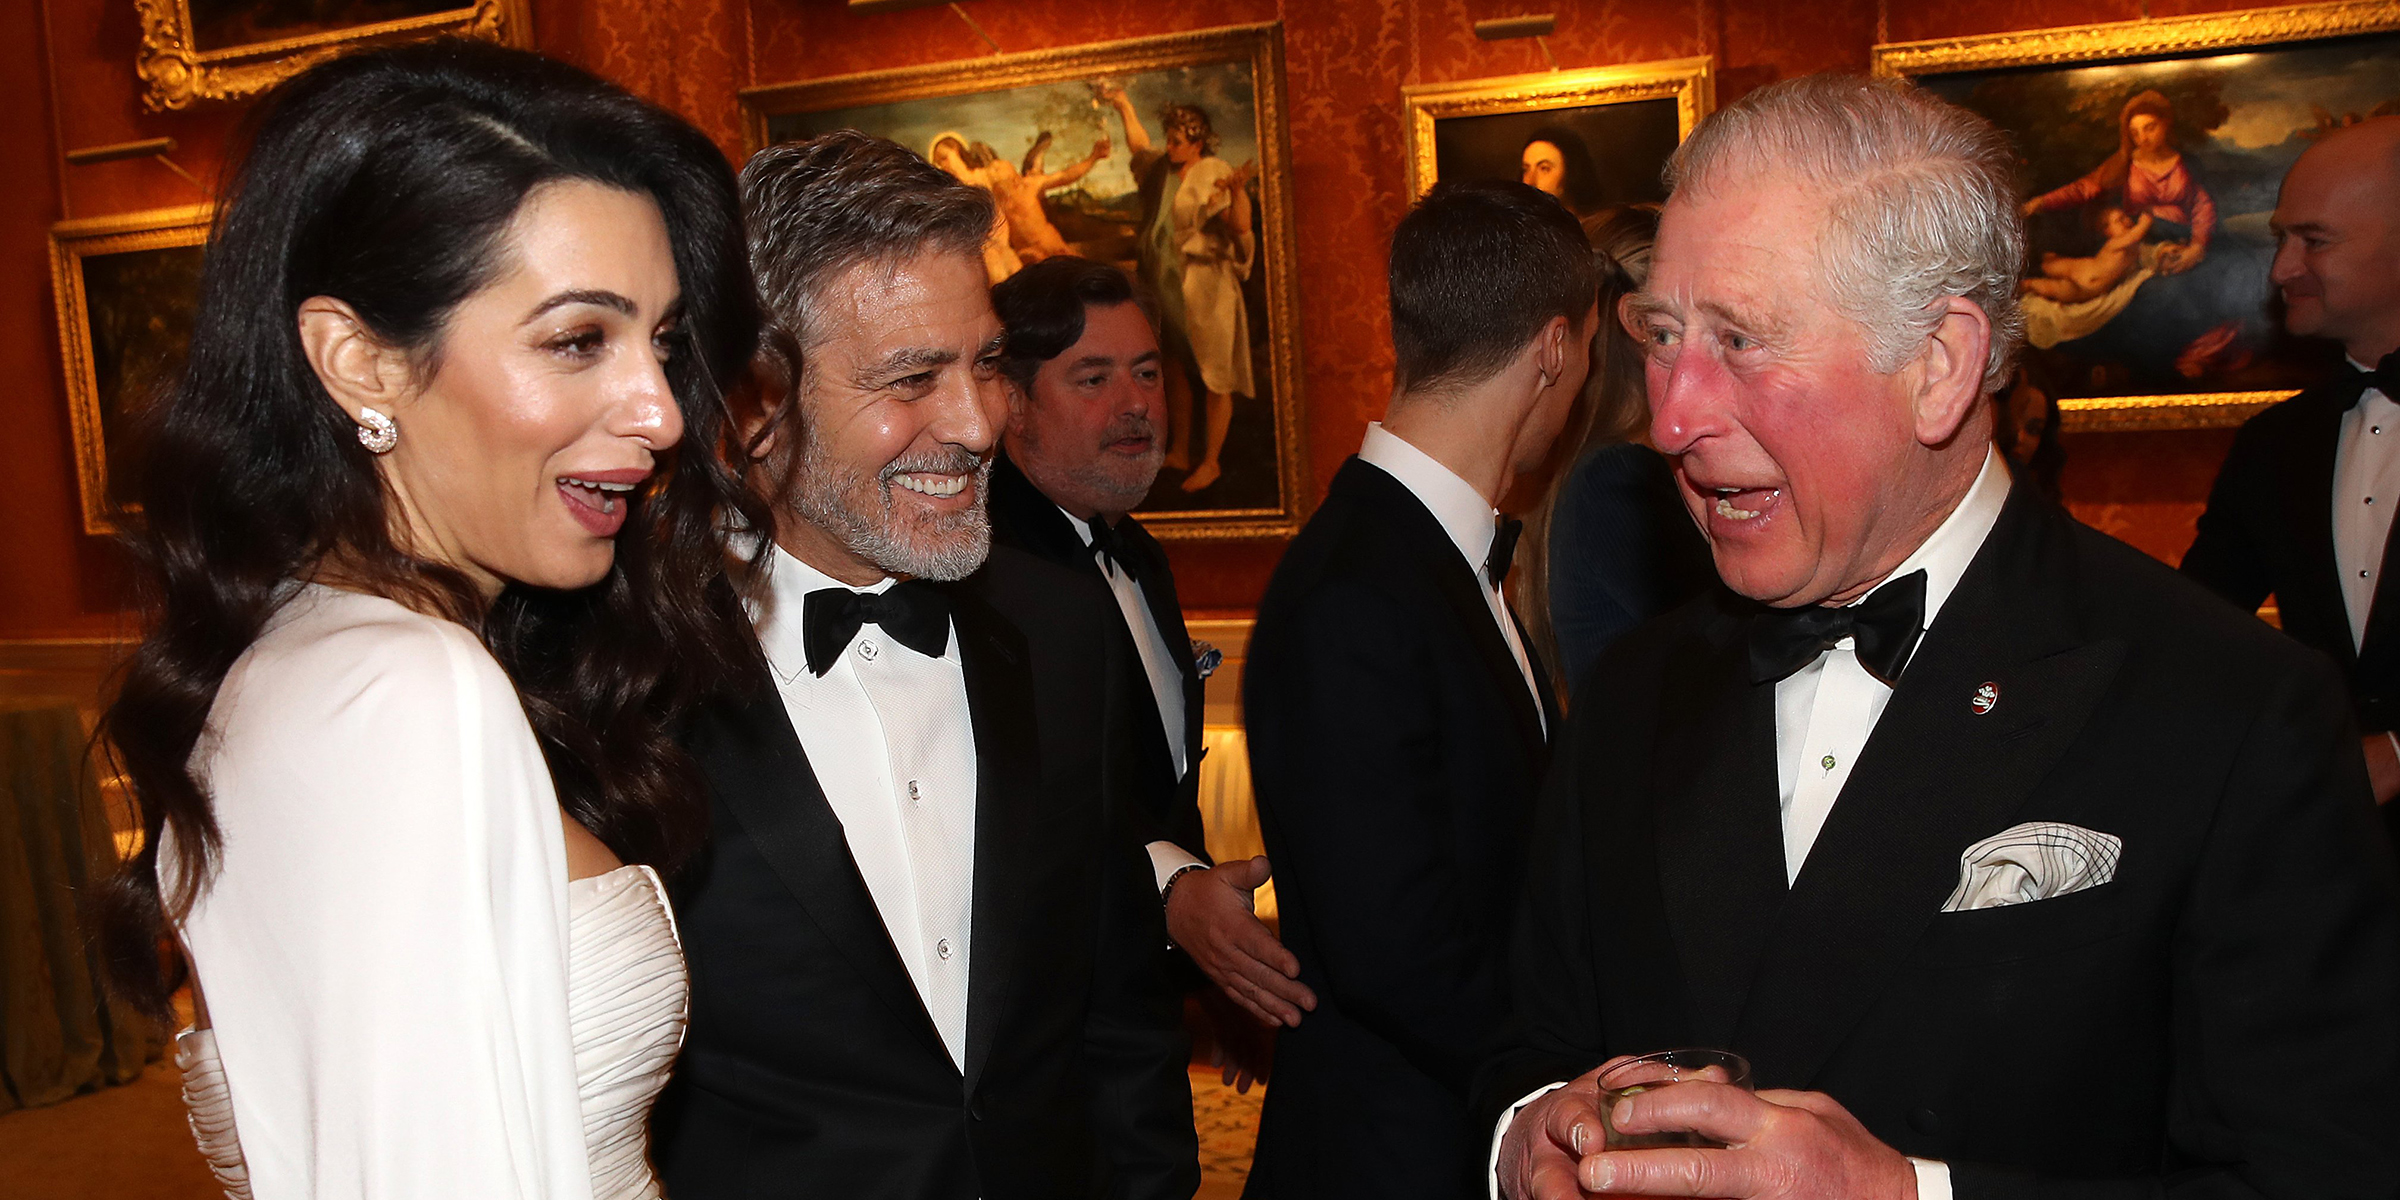 George and Amal Clooney dazzle at Buckingham Palace dinner